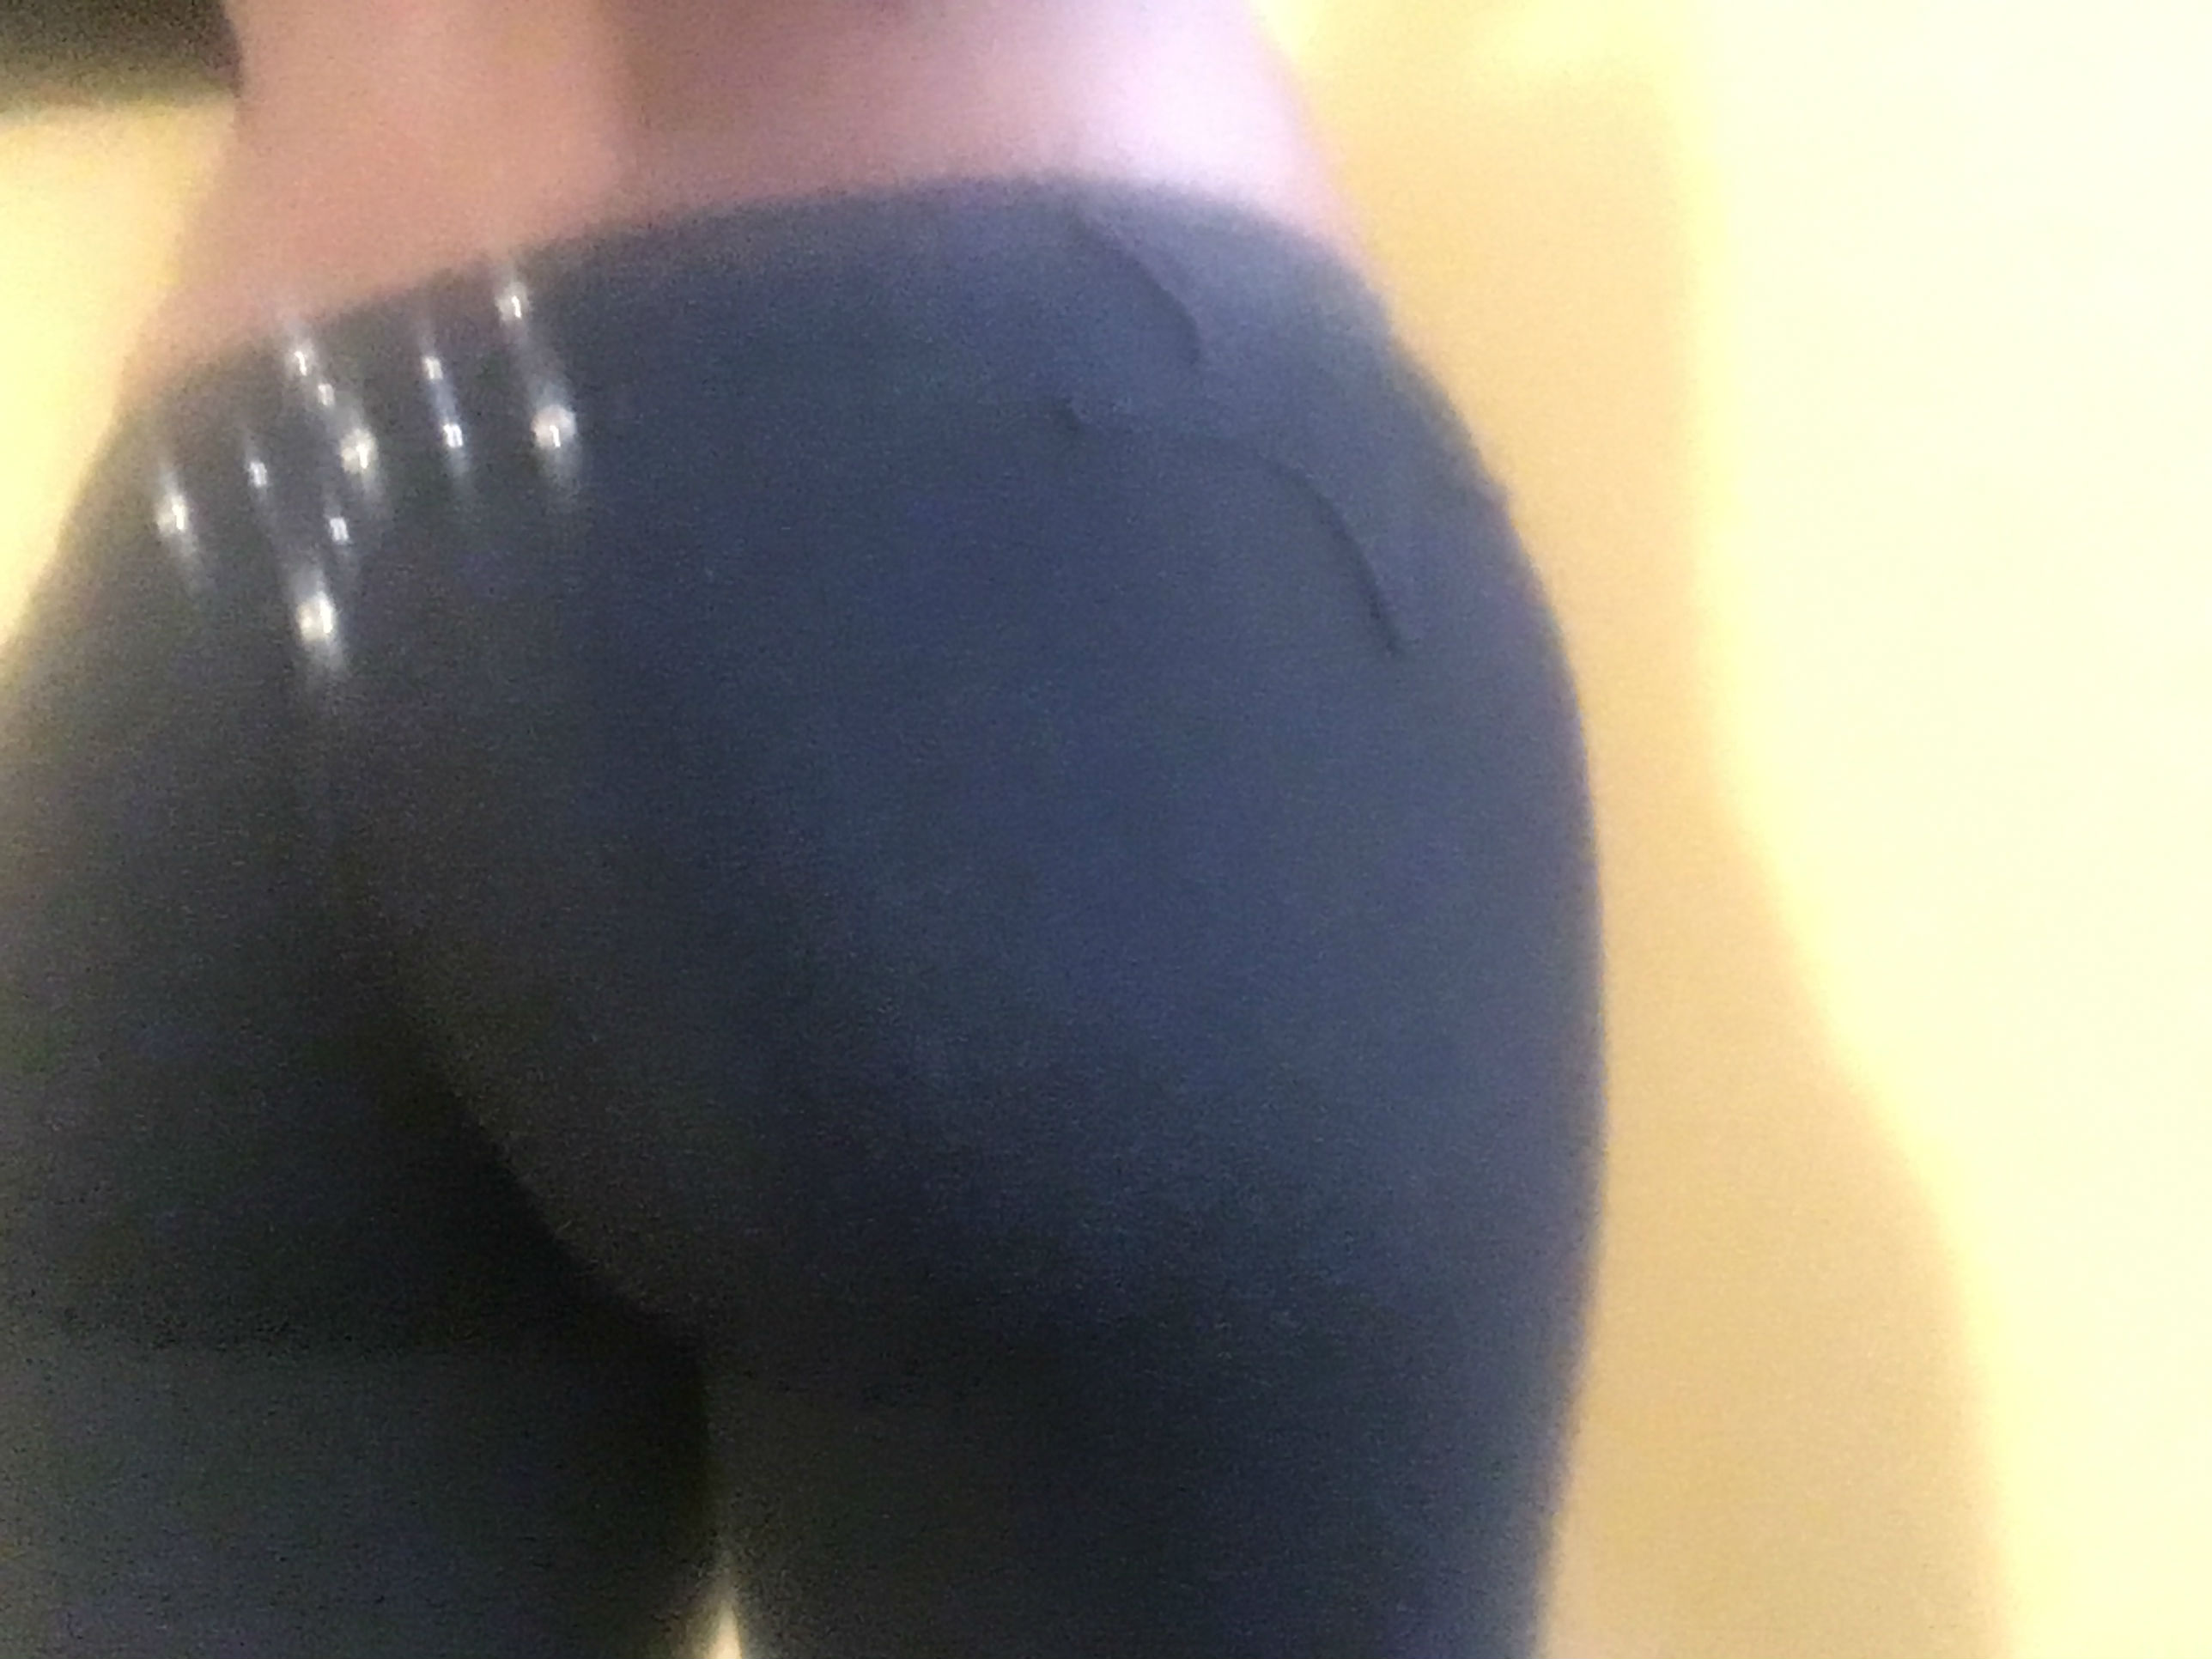 toning of the butt